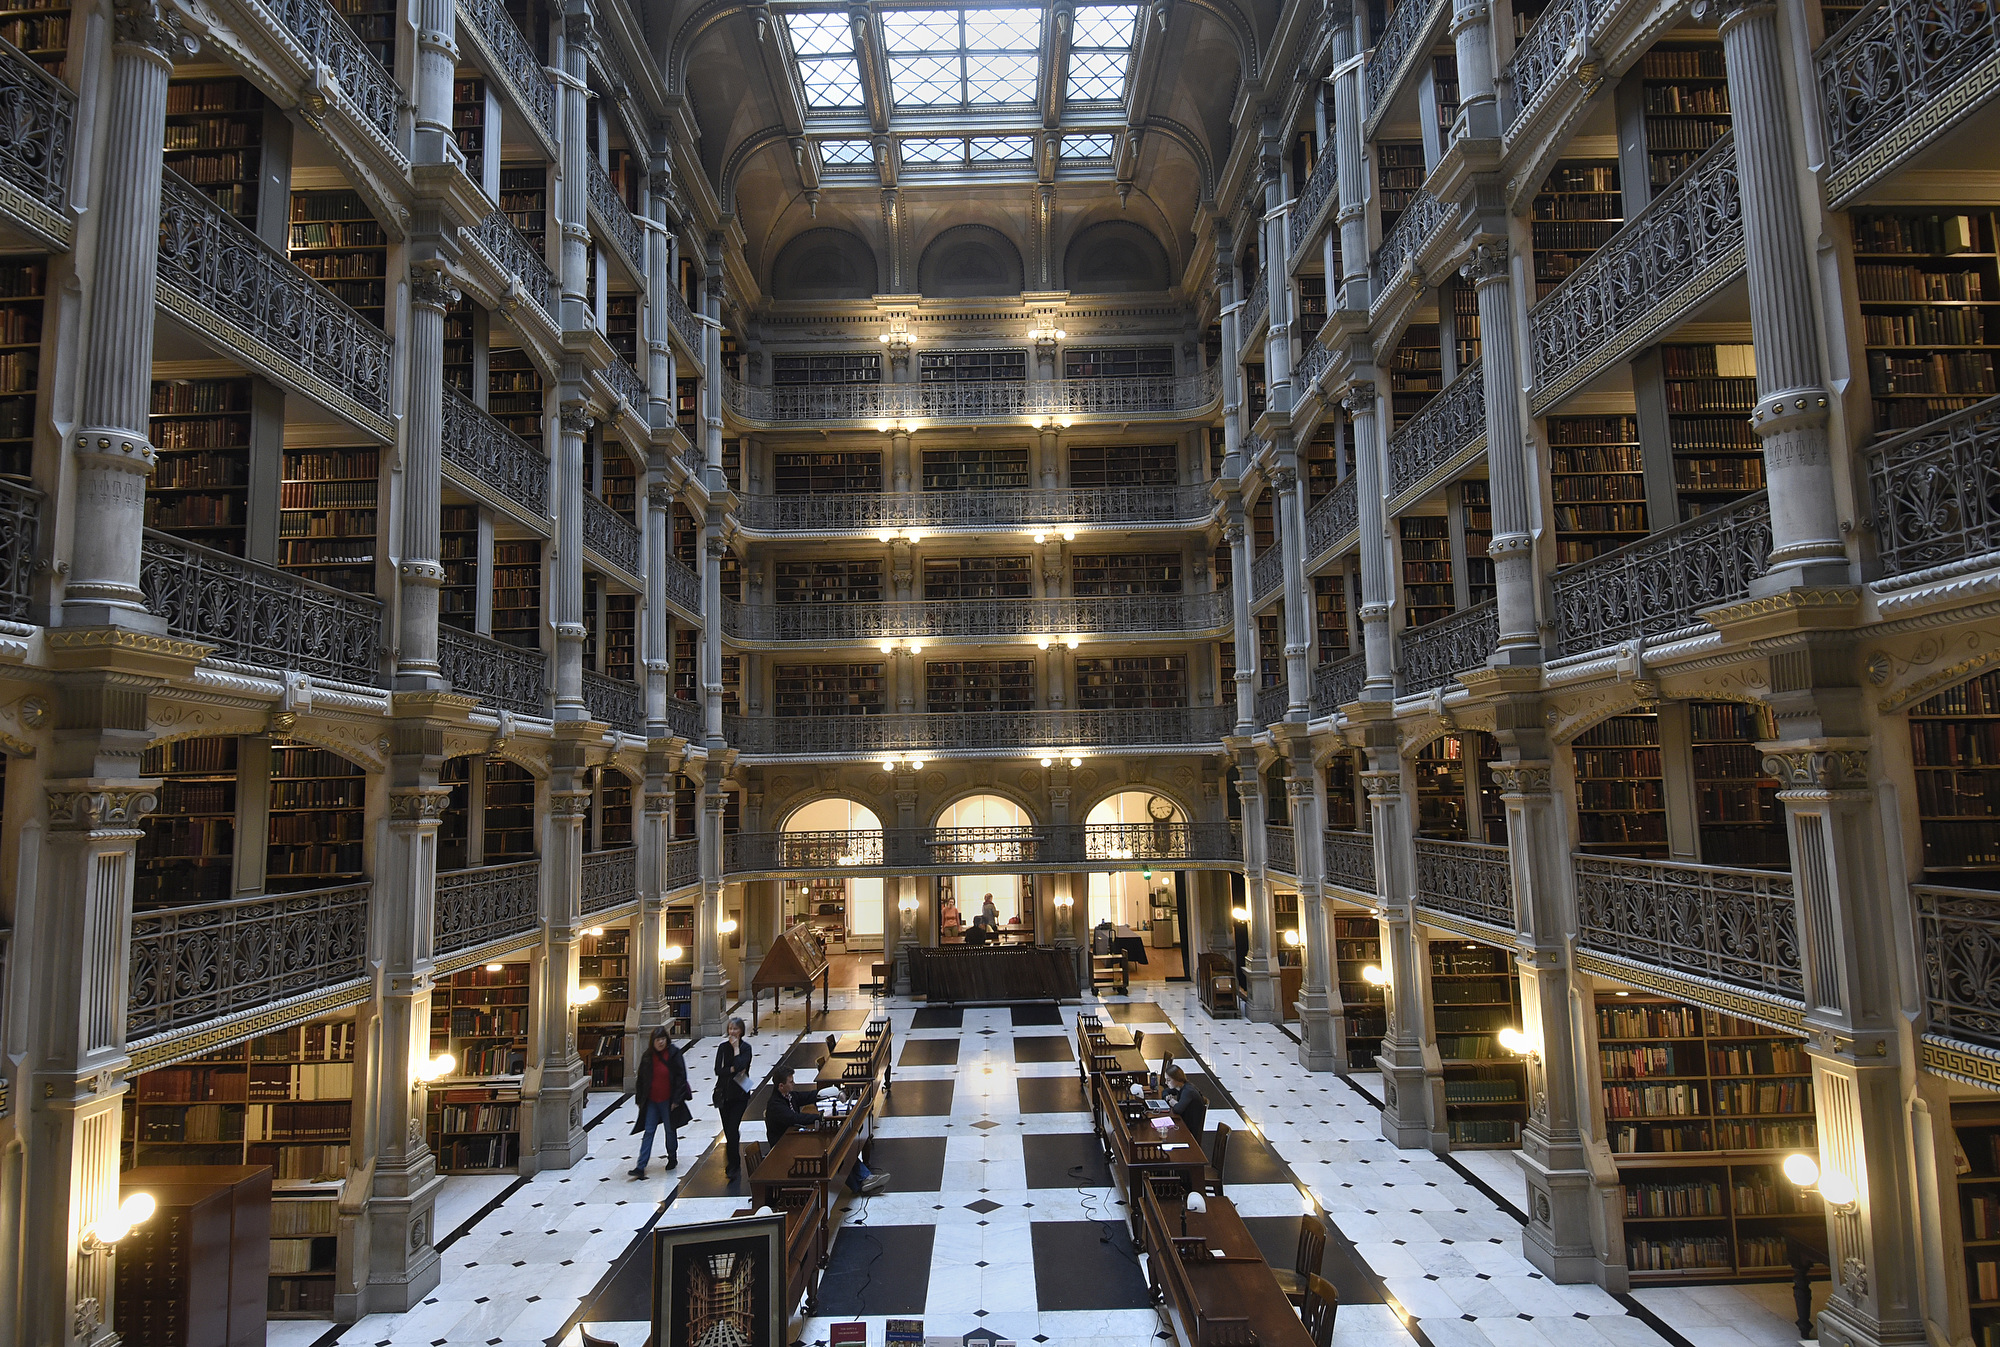 The George Peabody Library, a literary and architectural treasure